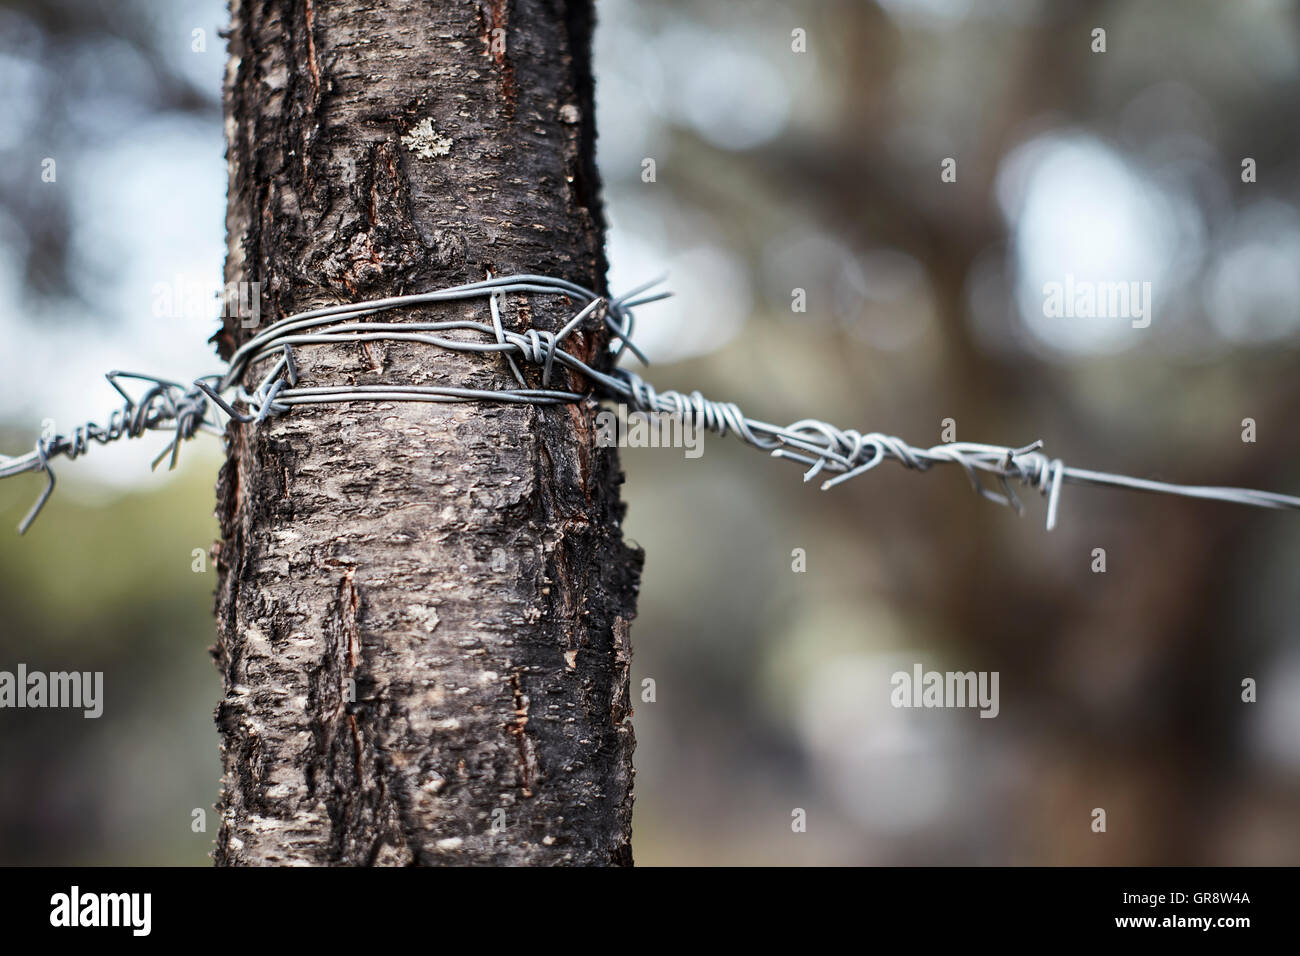 Wire Wrapped Stock Photos & Wire Wrapped Stock Images - Alamy